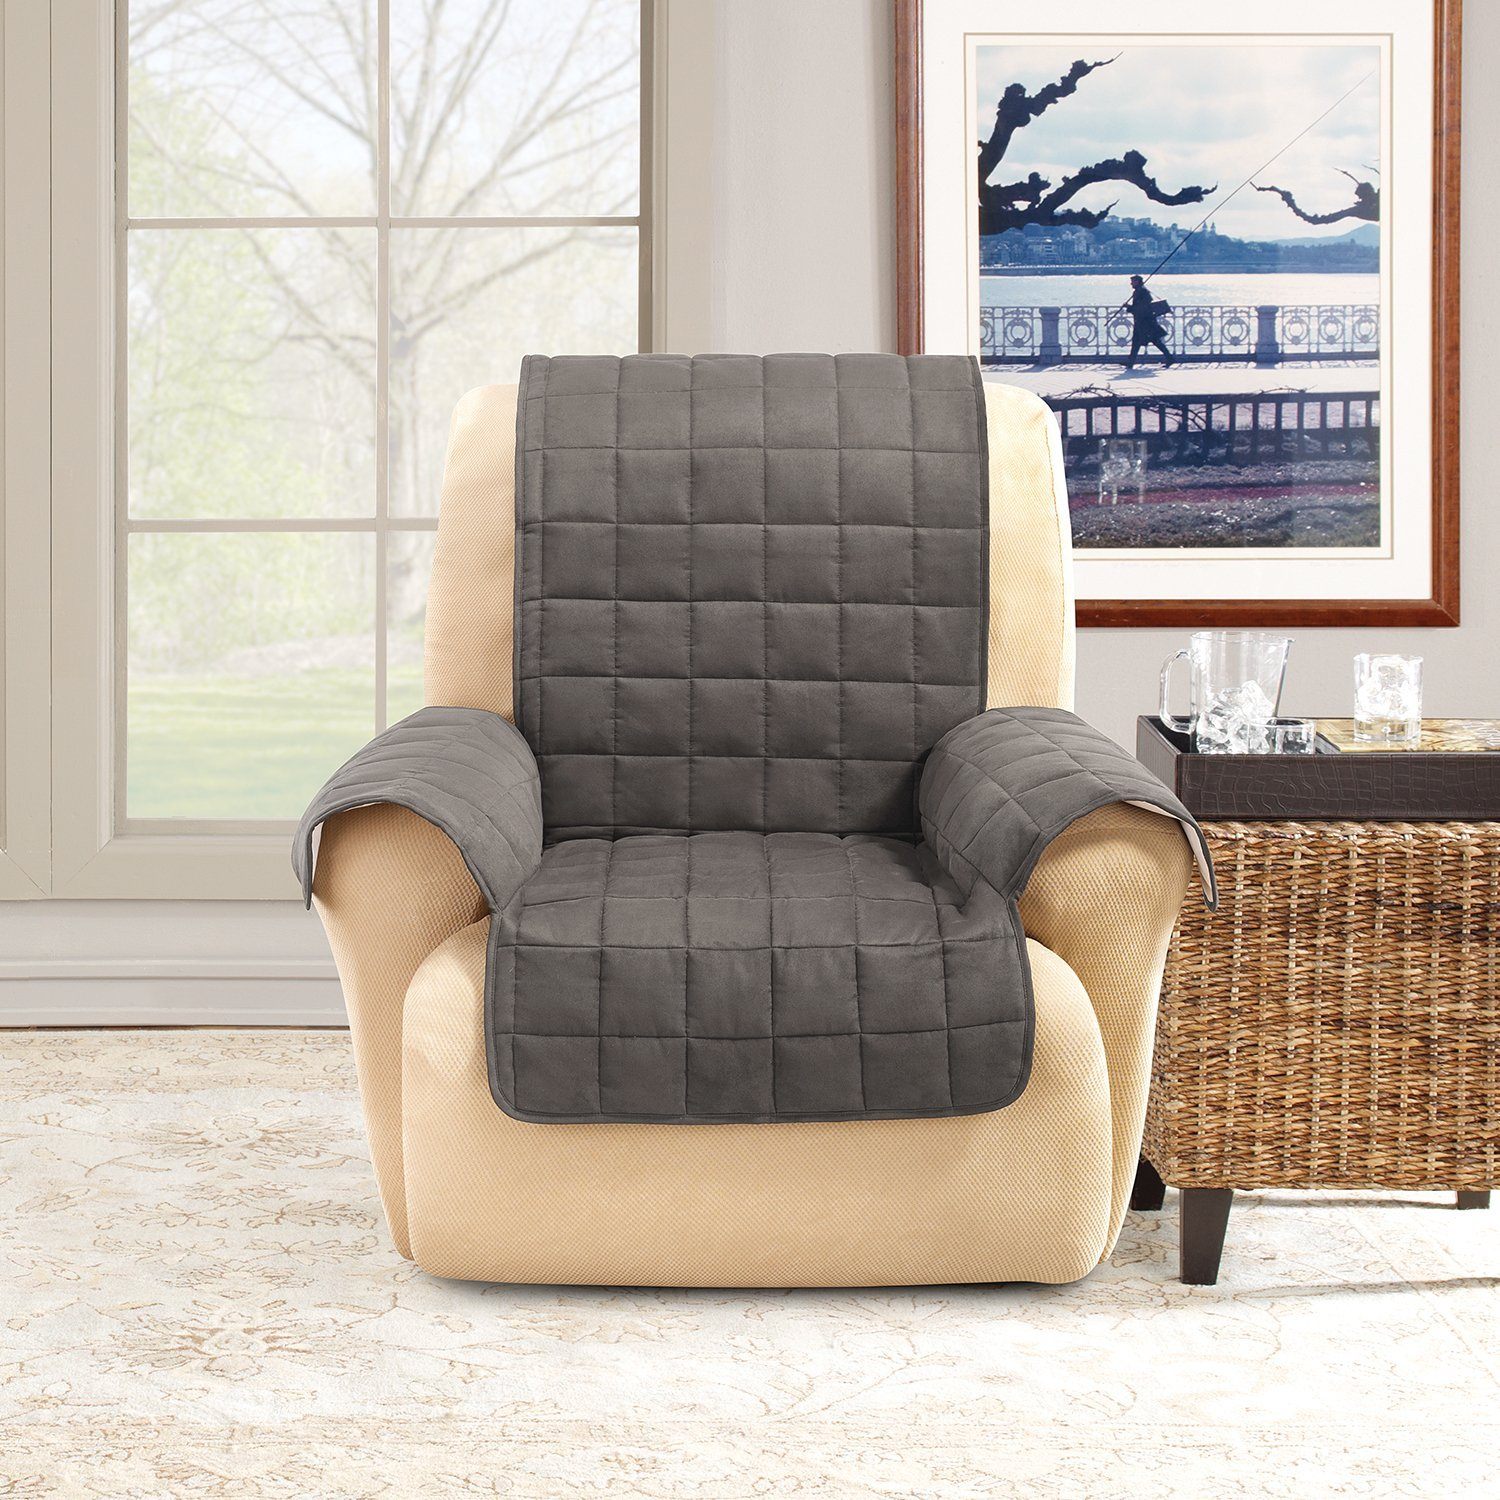 stretch sensations slipcover the ip raise bar jumbo walmart for com recliner